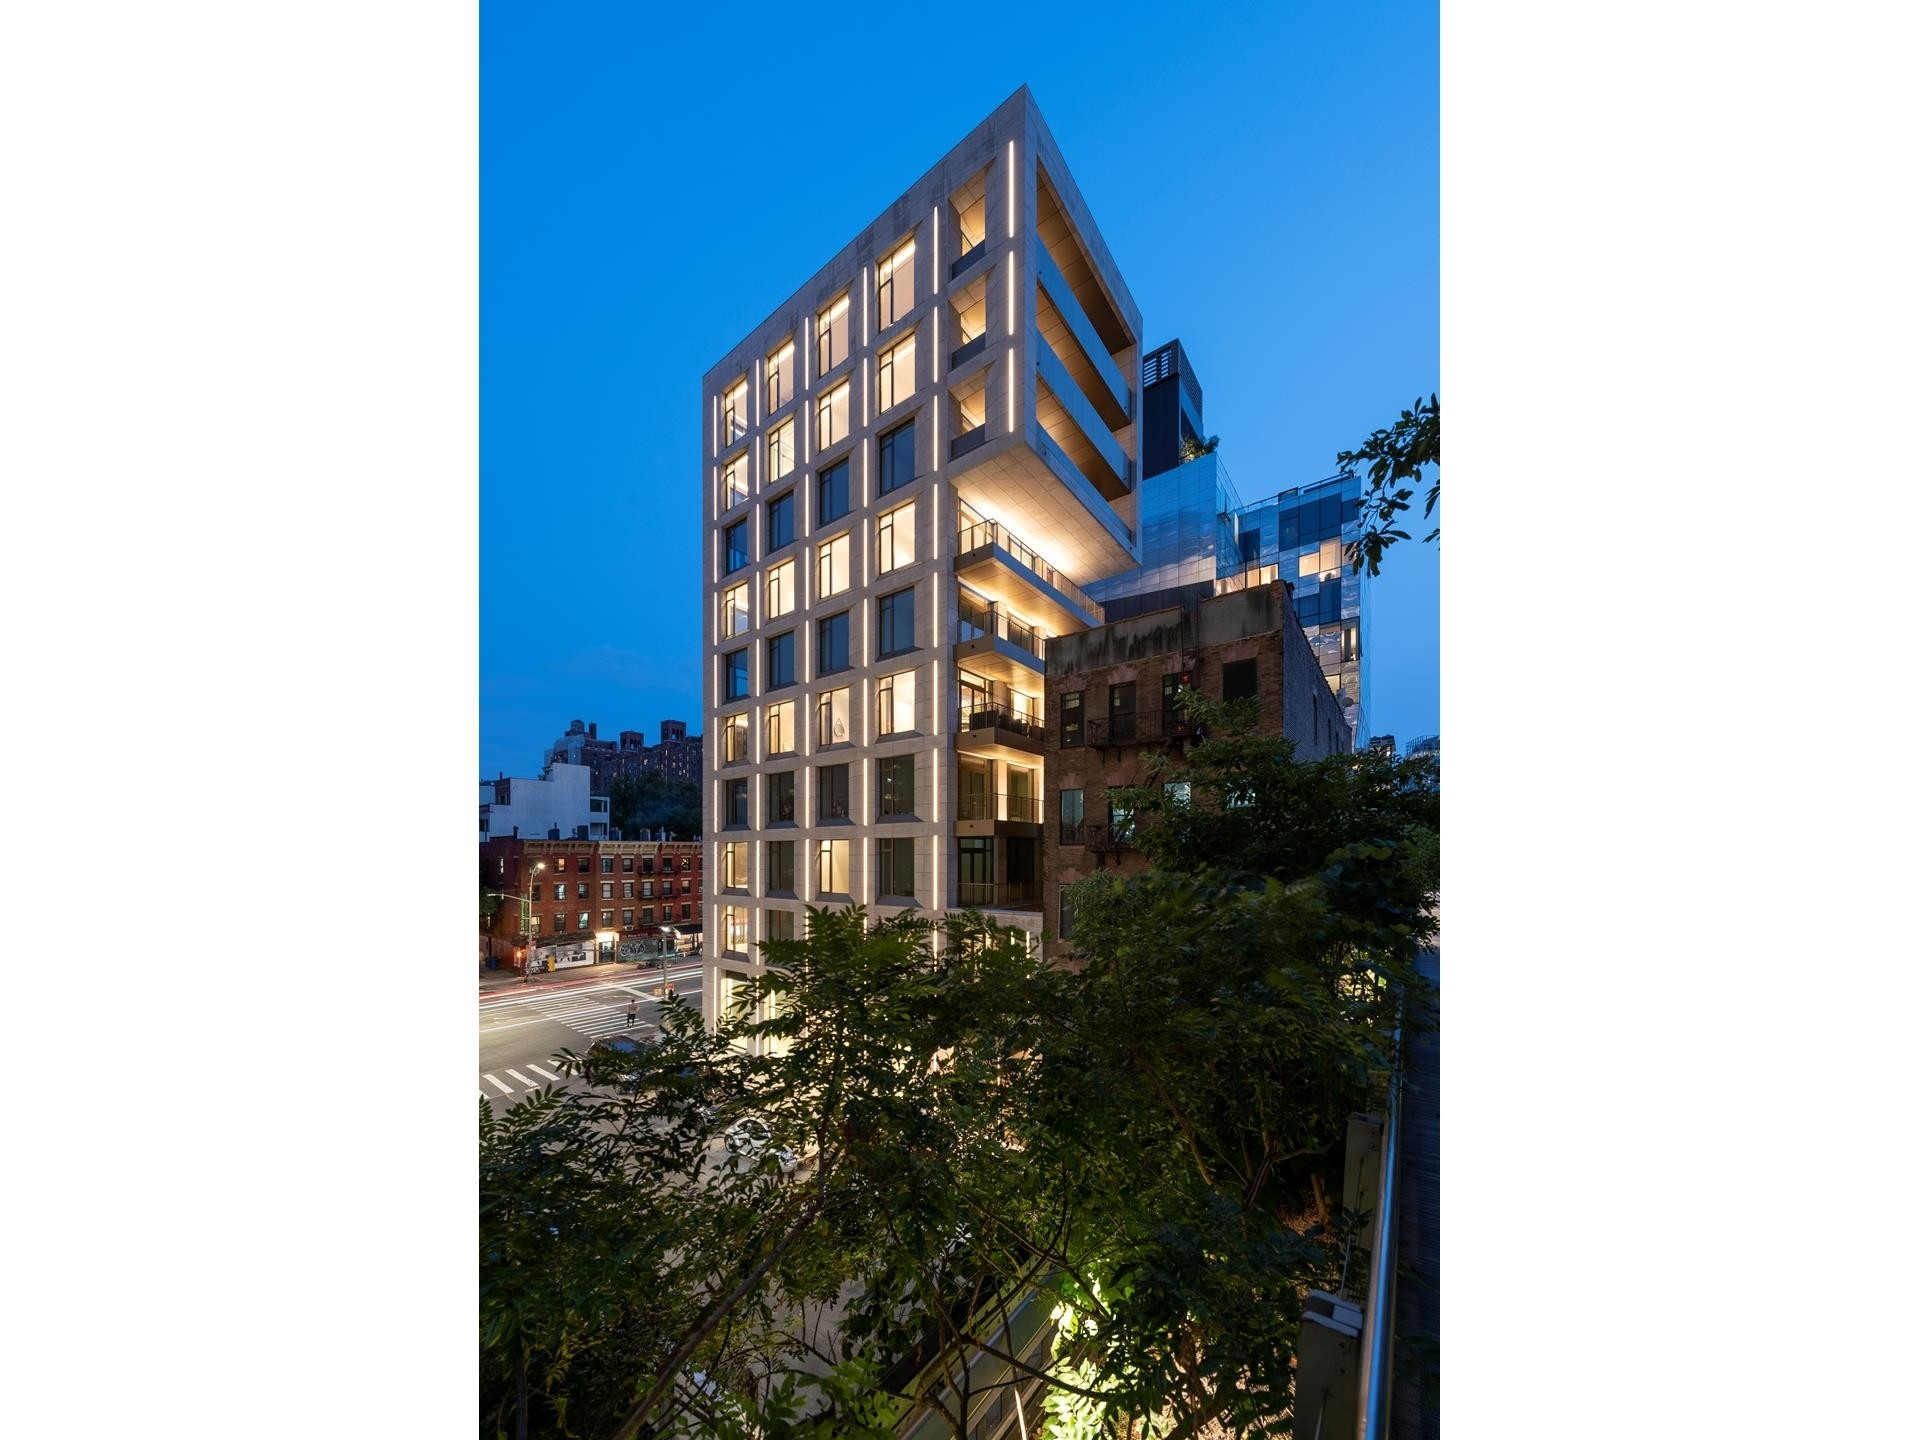 25. Condominiums for Sale at 500 W 25TH ST , PH Chelsea, New York, NY 10001